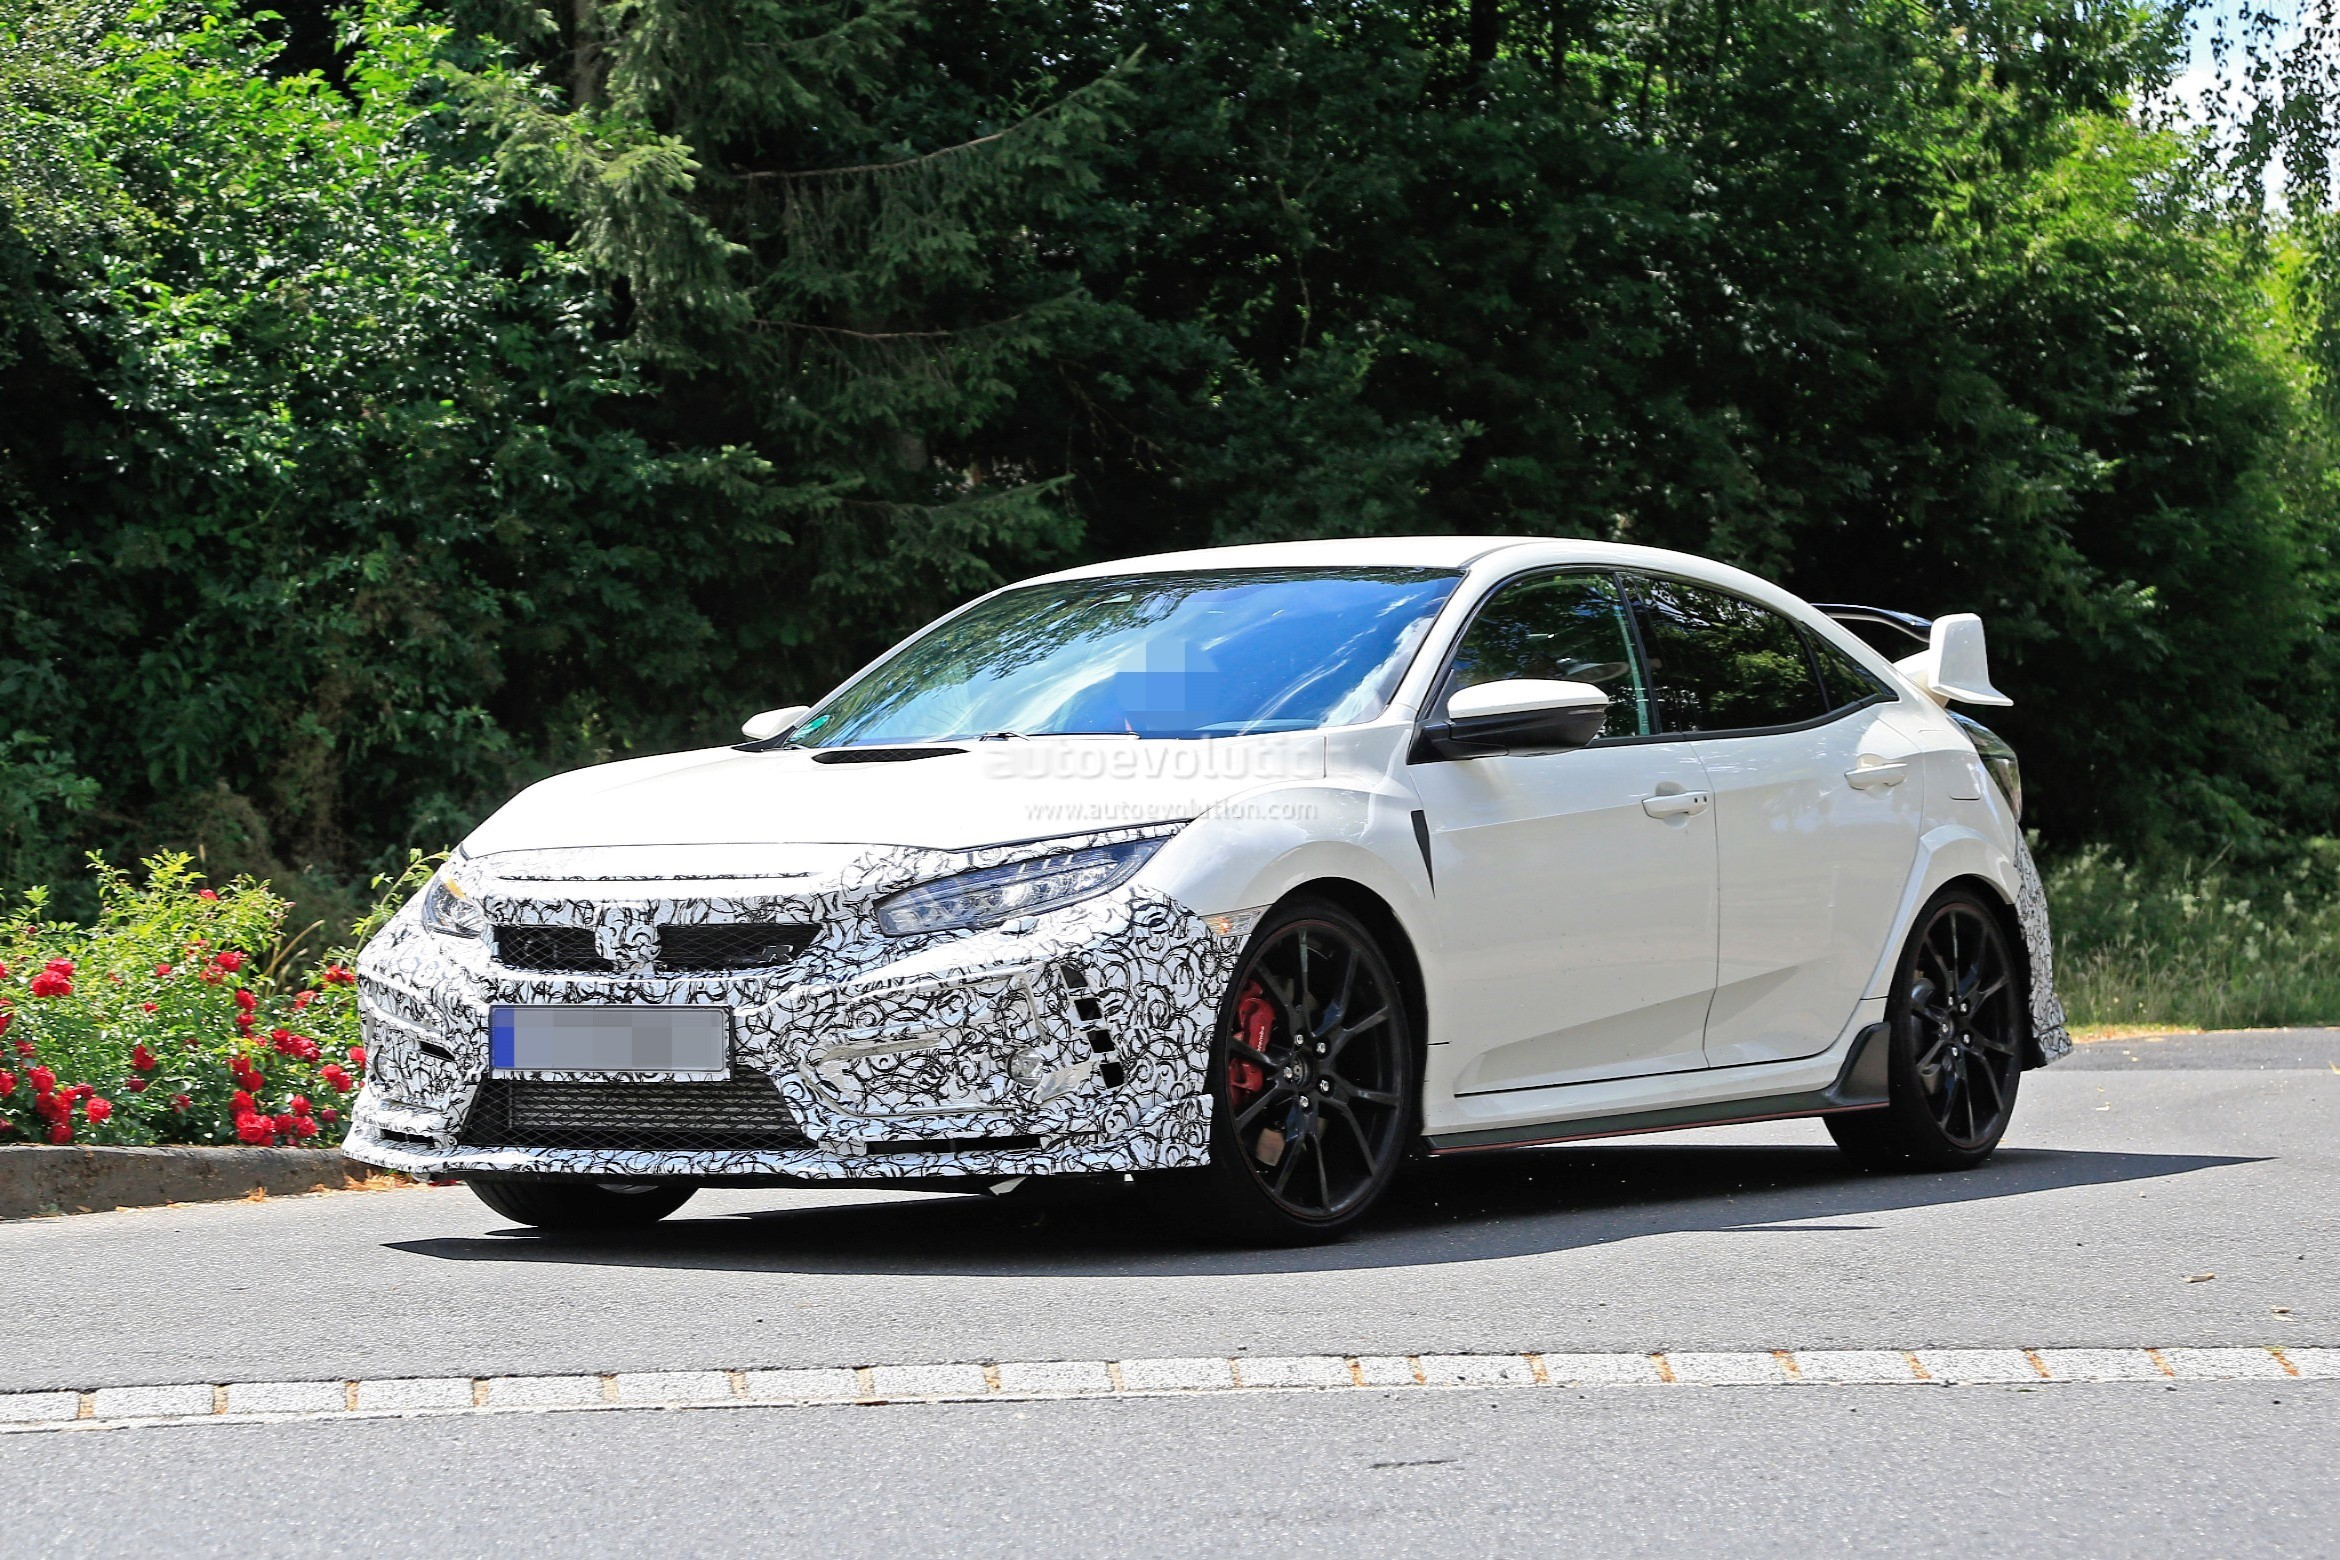 2019 Honda Civic Type R Spied For The First Time